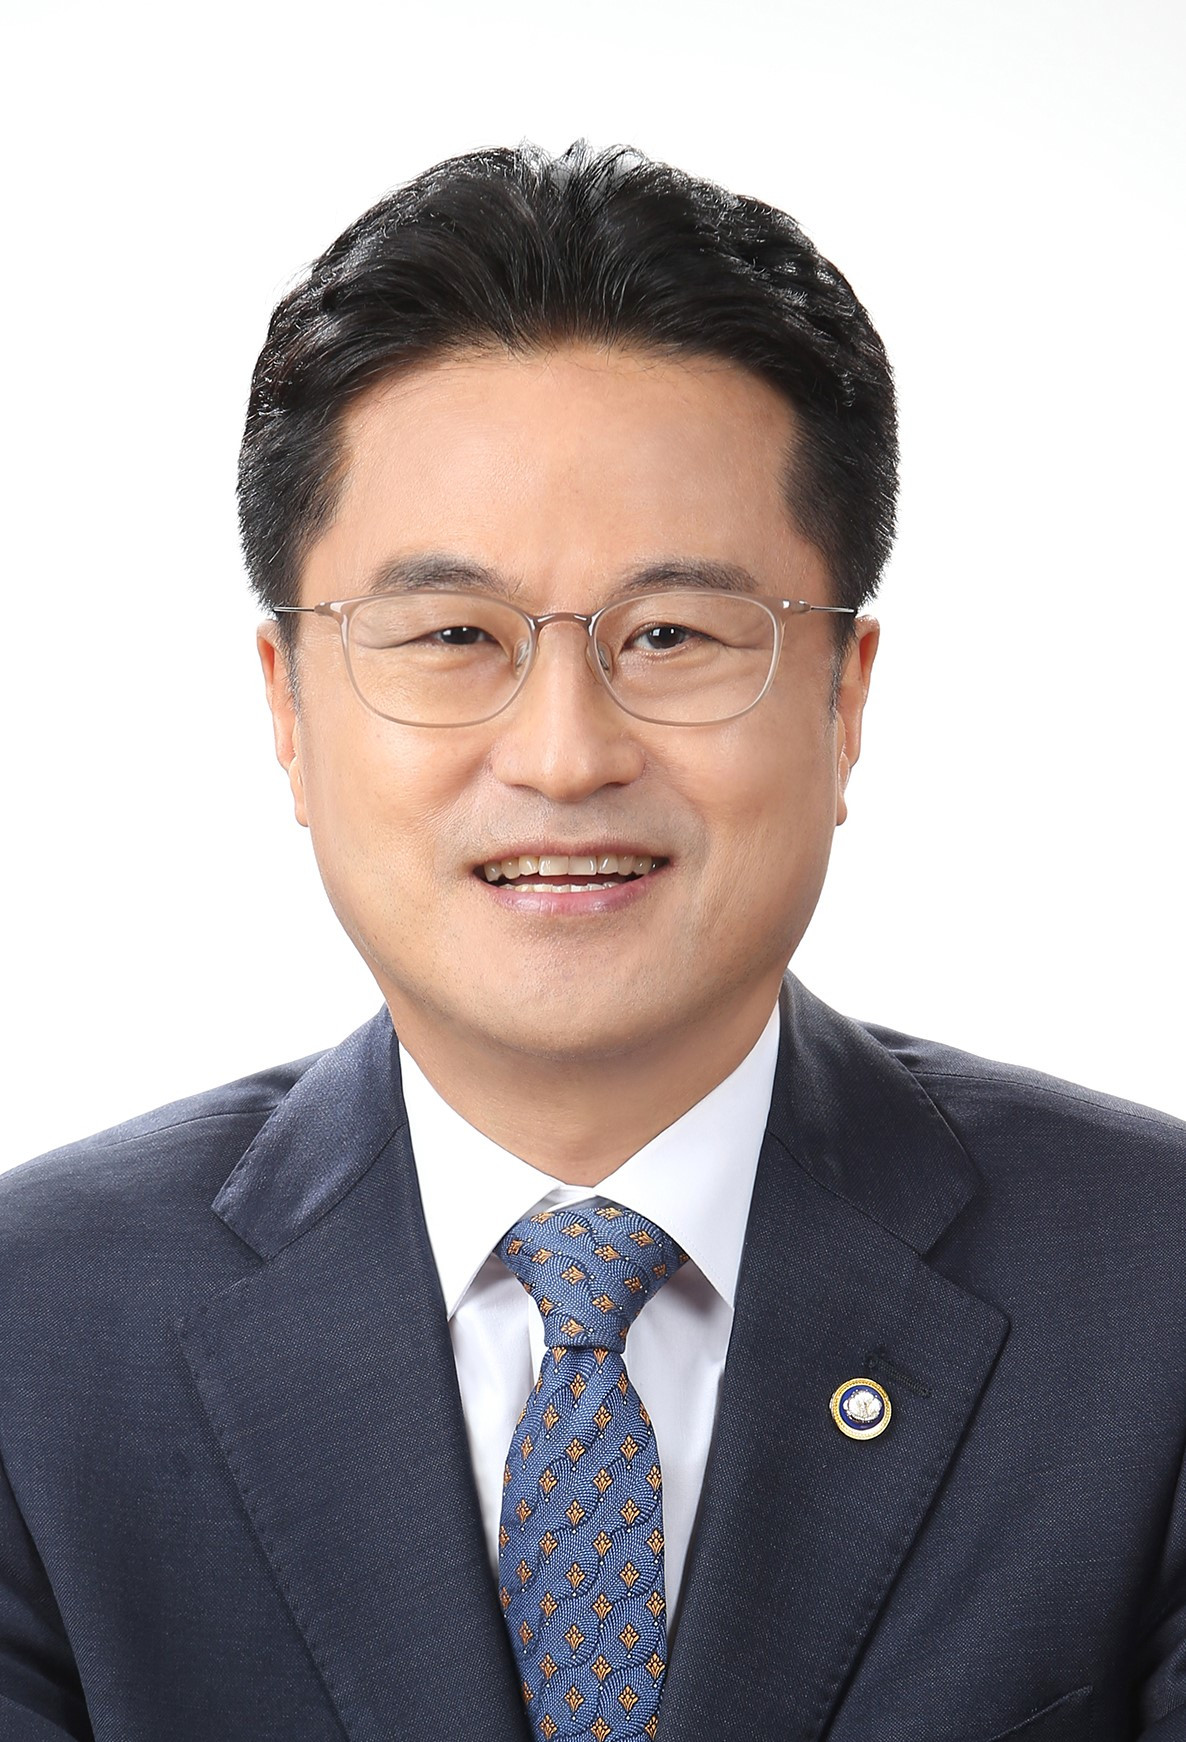 Kim Chung-woo, the administrator of the Public Procurement Service